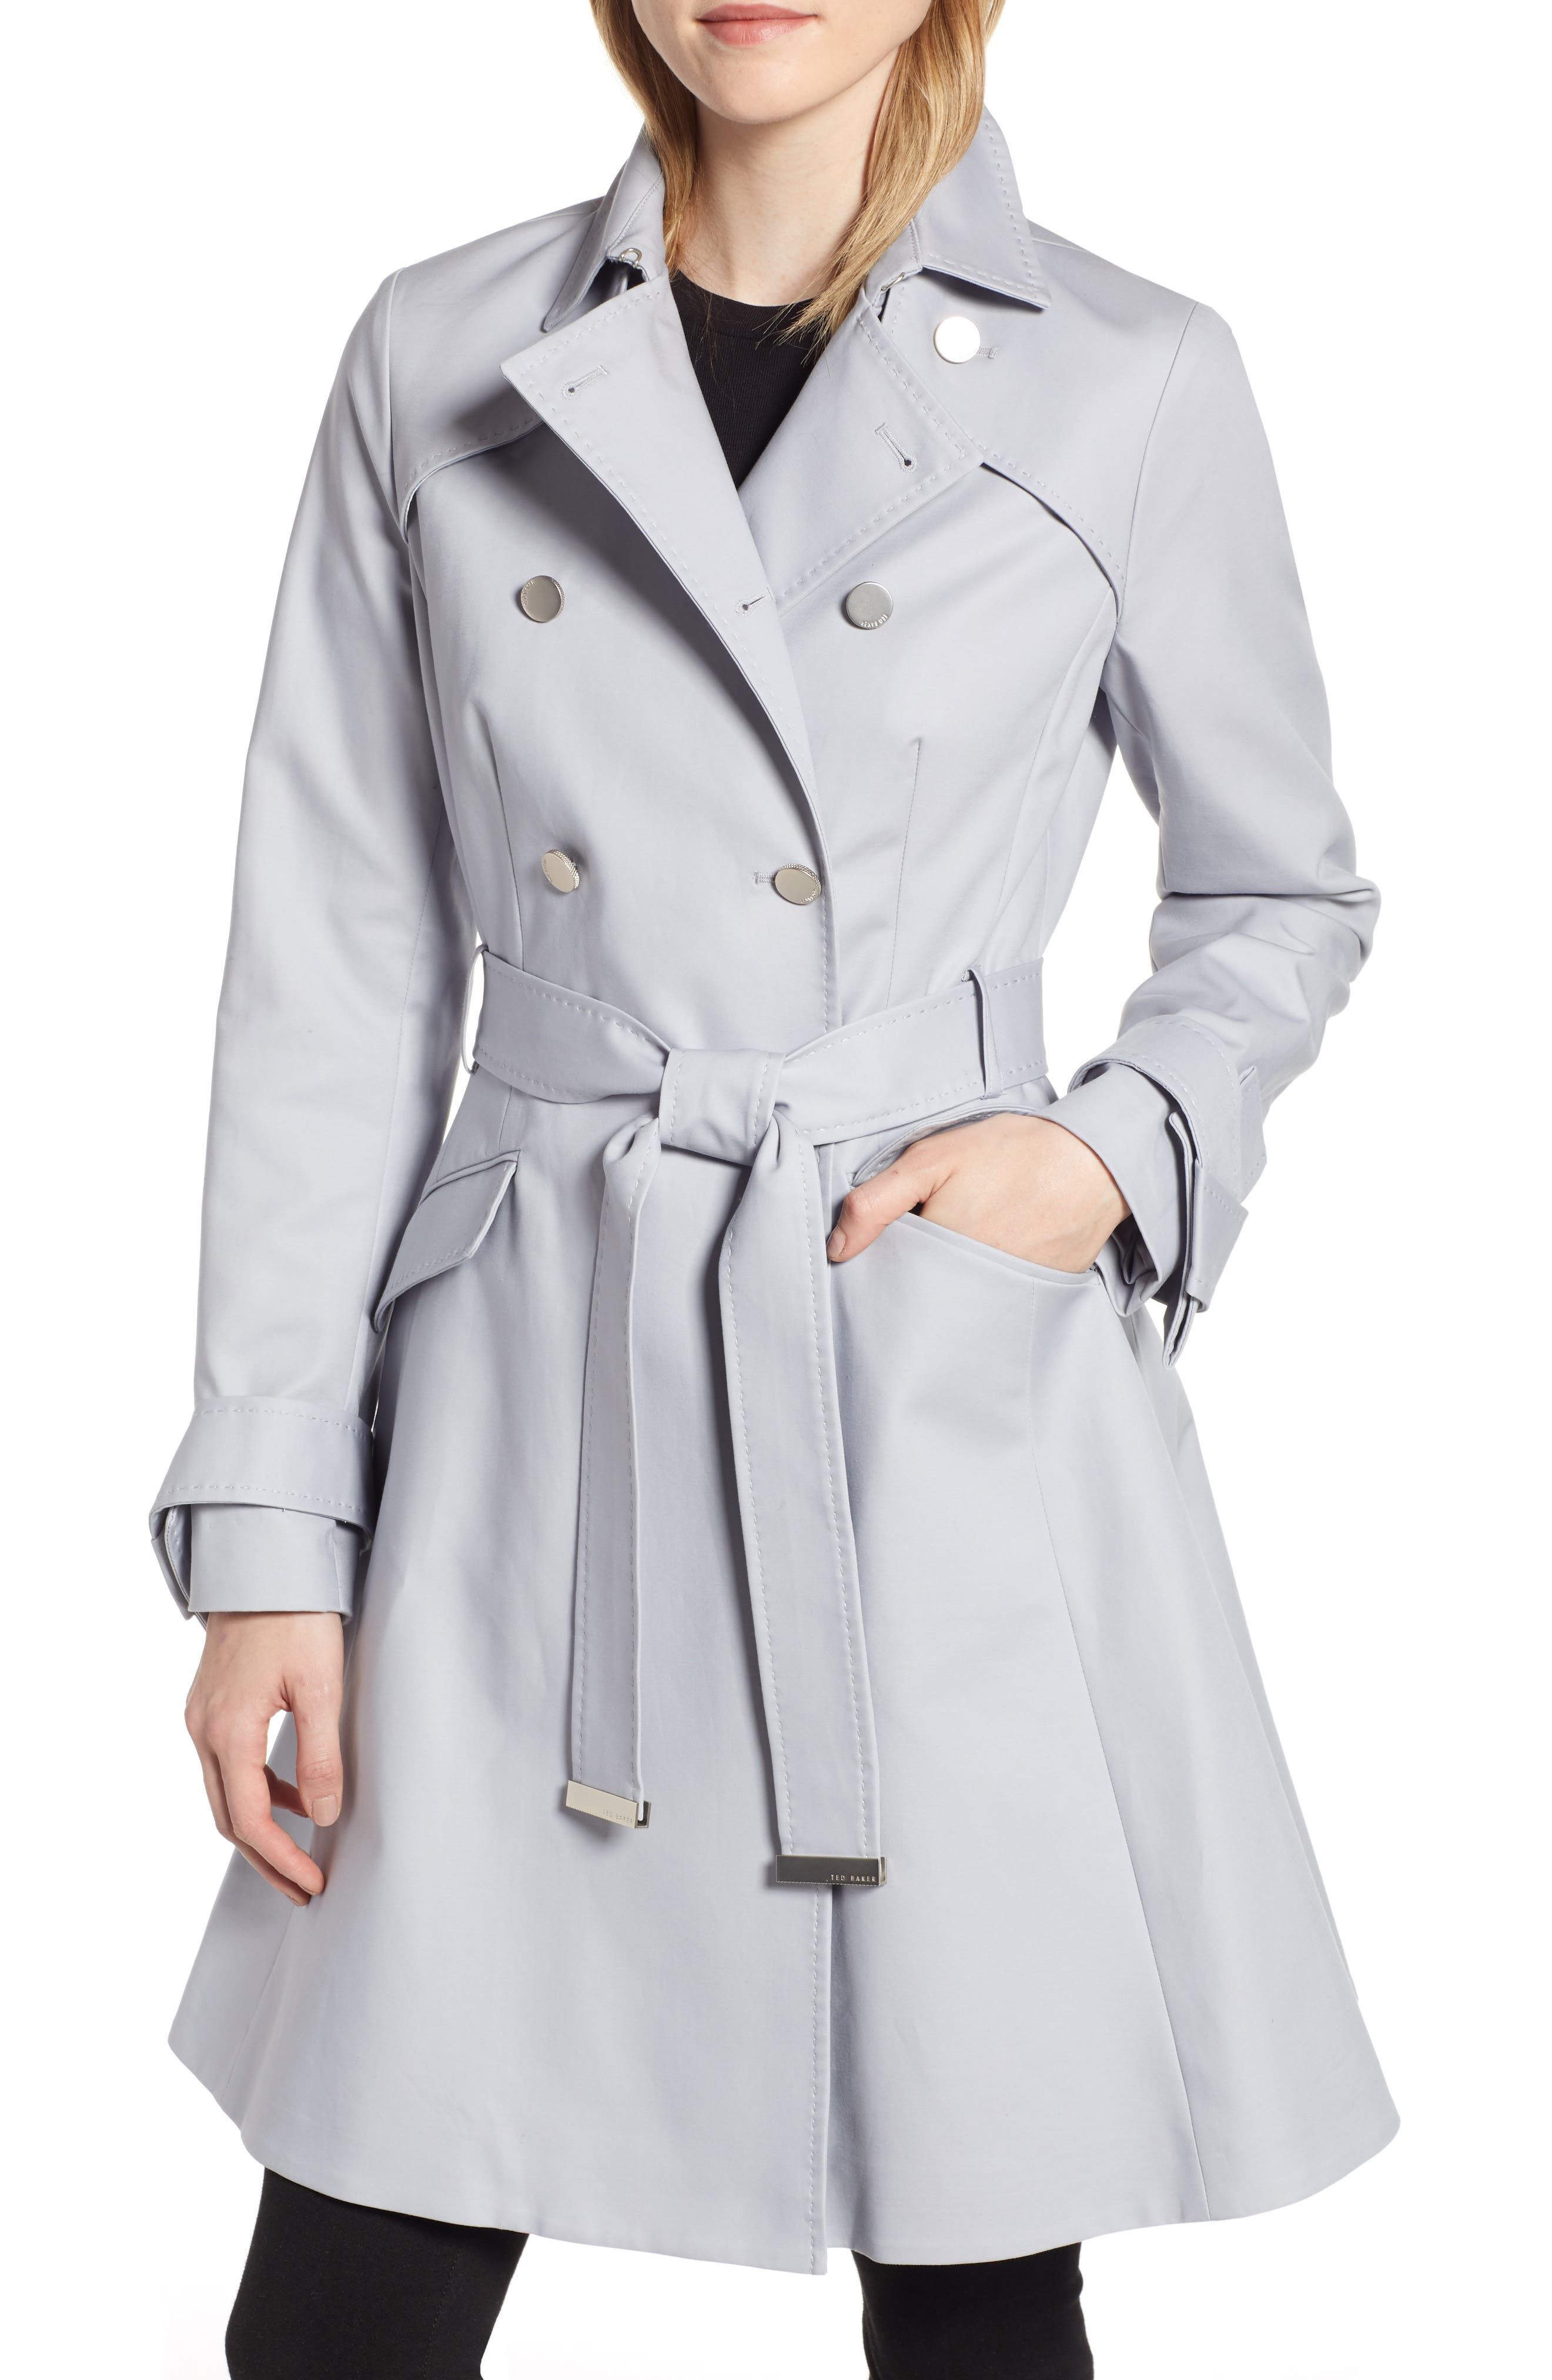 TED BAKER LONDON, Tie Cuff Detail Trench Coat, Main thumbnail 1, color, GREY